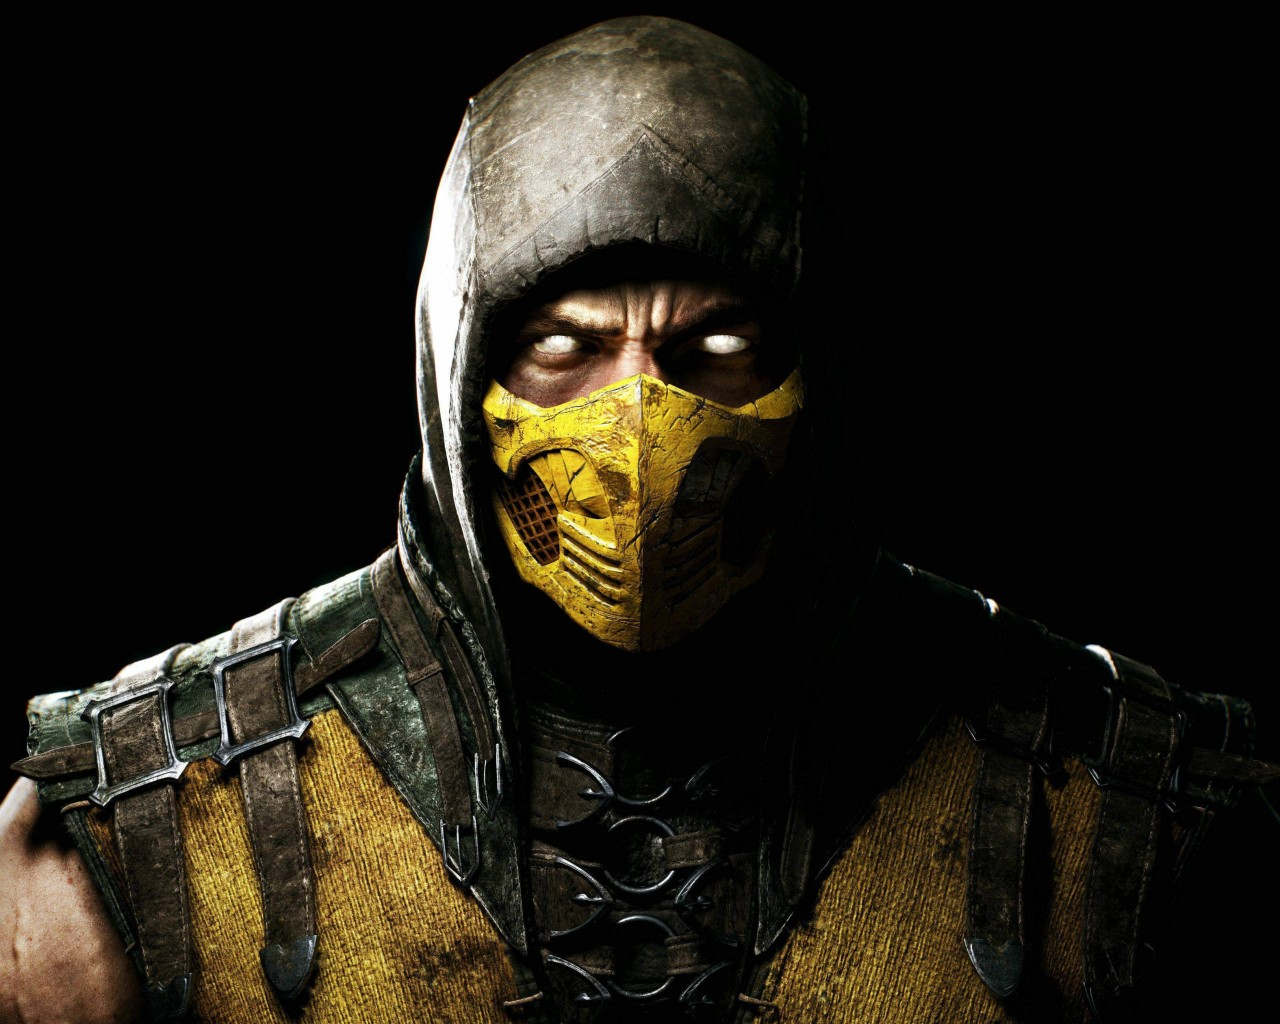 Scorpion Mortal Kombat X Wallpaper for Desktop 1280x1024